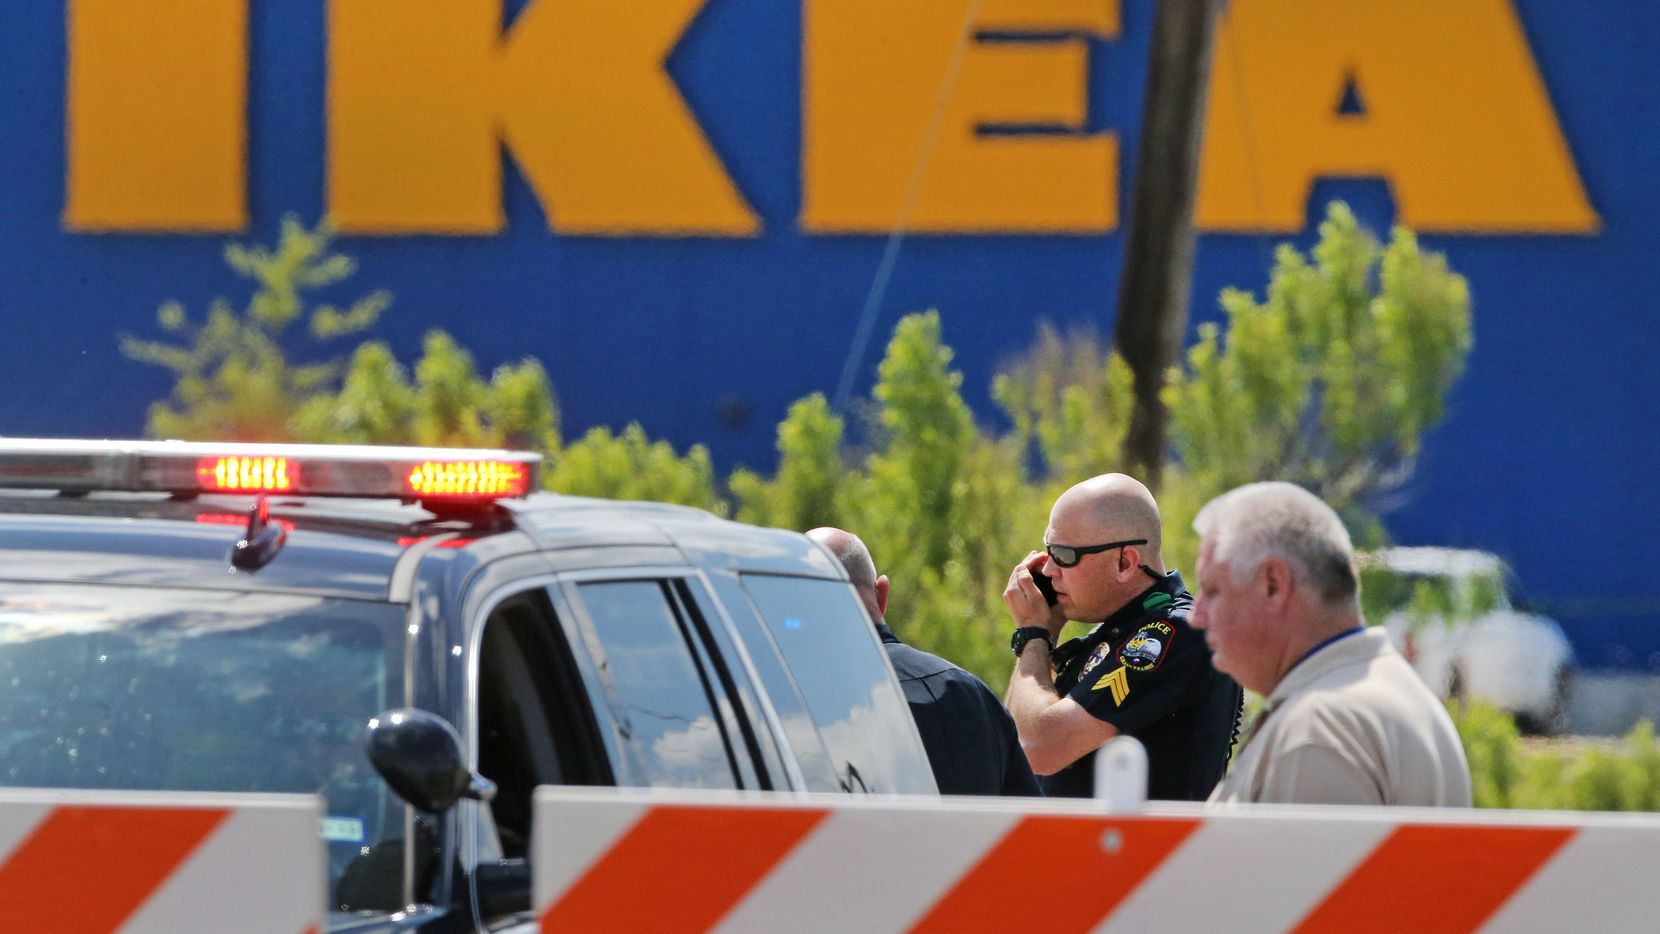 Grand Prairie police officers at the scene of a confrontation with an armed man outside the IKEA store off Mayfield and the Bush Turnpike on Monday.